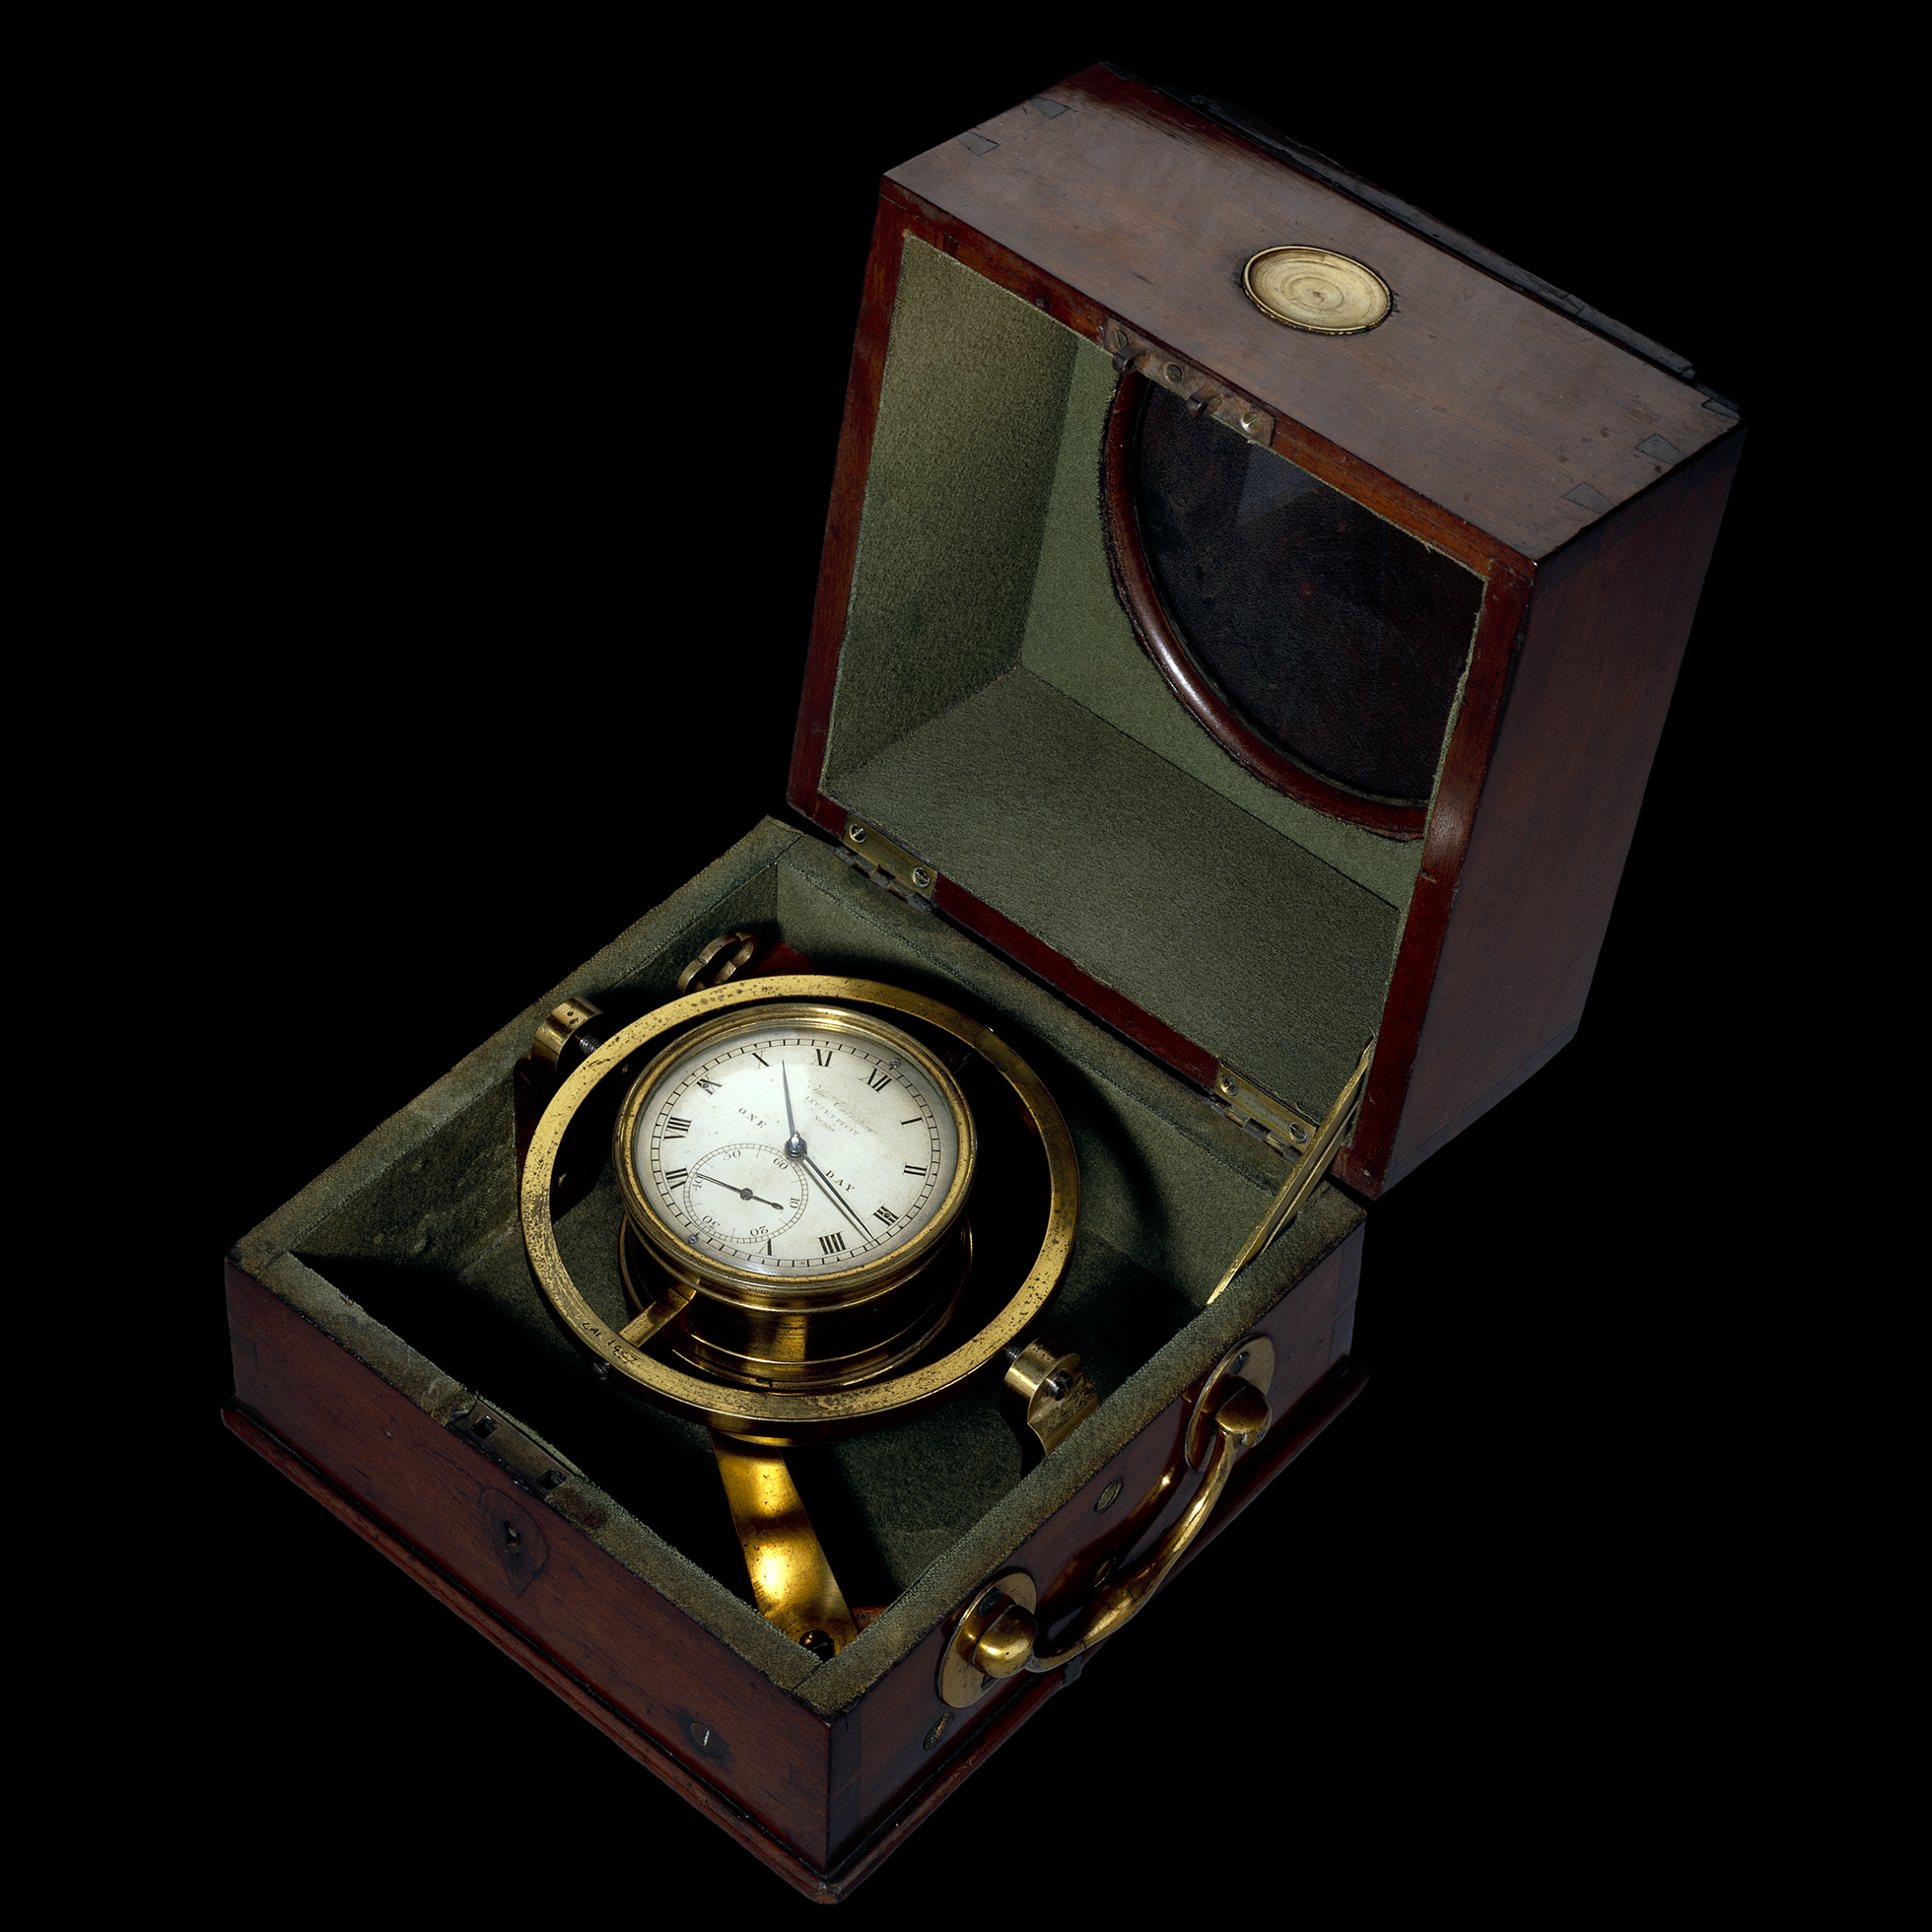 Clock with shock absorbers Charles Darwin brought with him on one of his voyages, 1800s